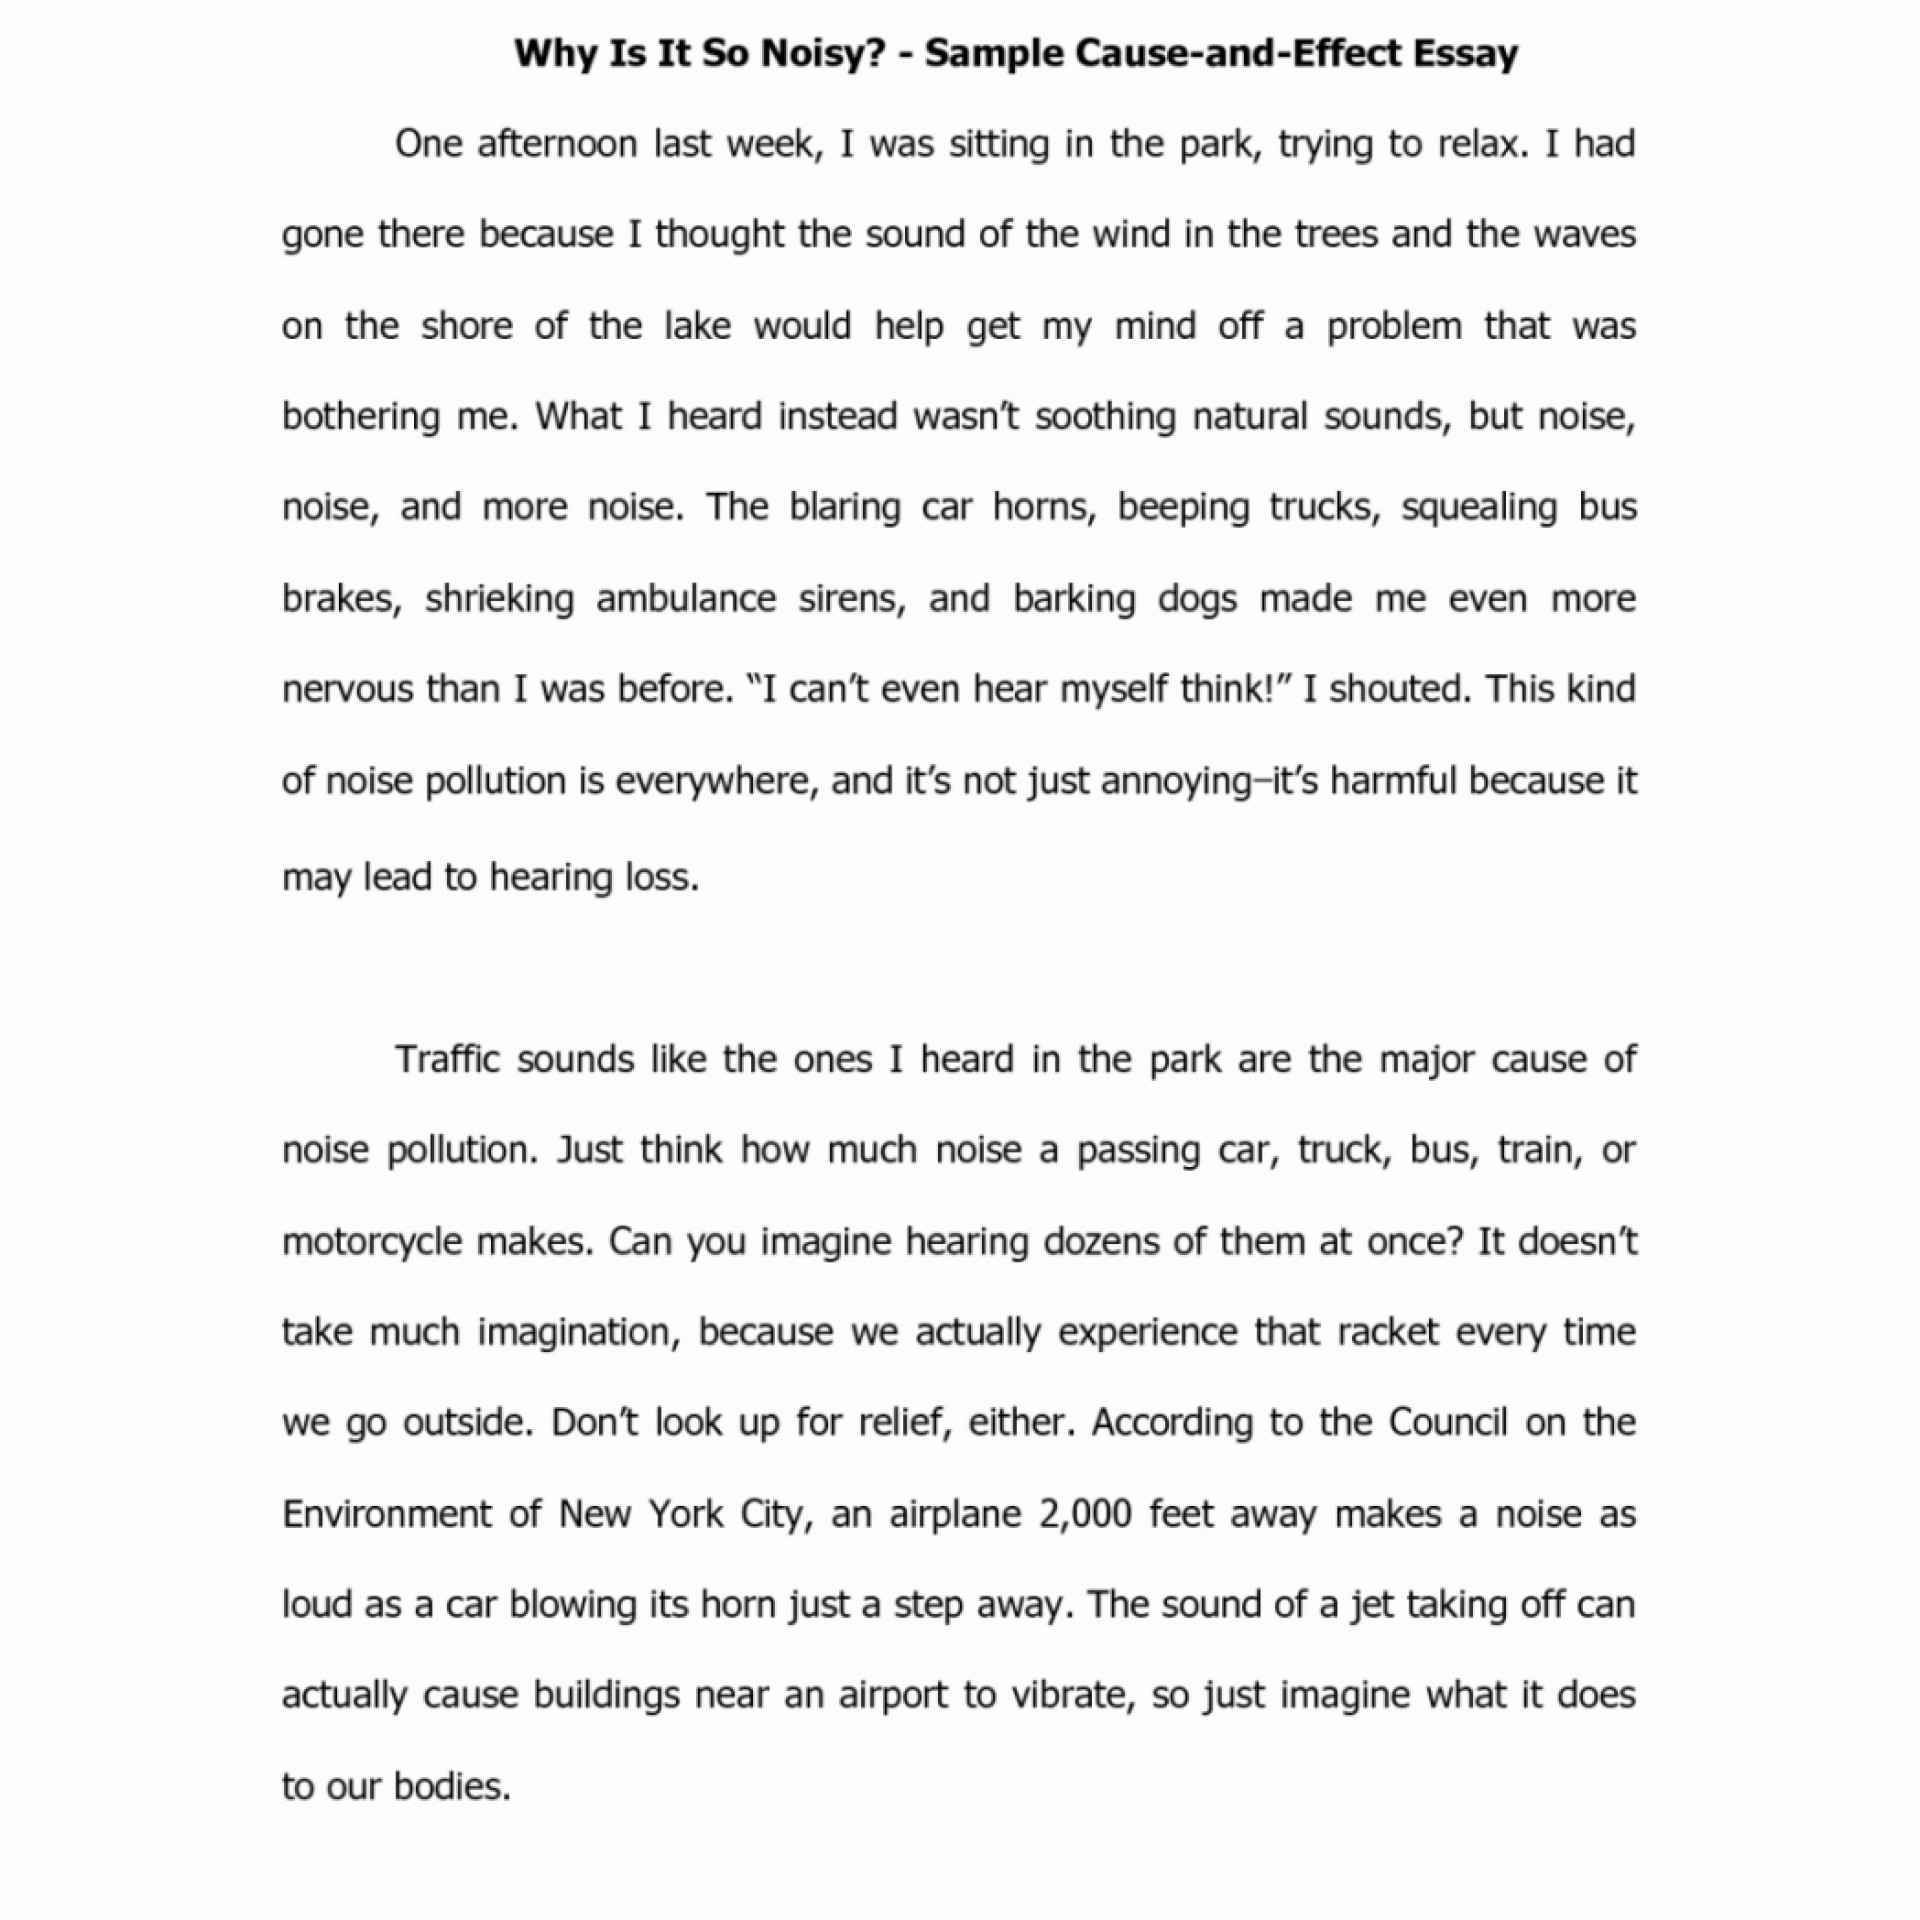 017 Essay Example Cause Effect Format Best Of And Examples For Or Good Cover Bystander Domino Analysis Ielts Free 6th Grade College Pdf Middle School 1048x1048 Exceptional Essays Writing Ppt On Bullying 1920